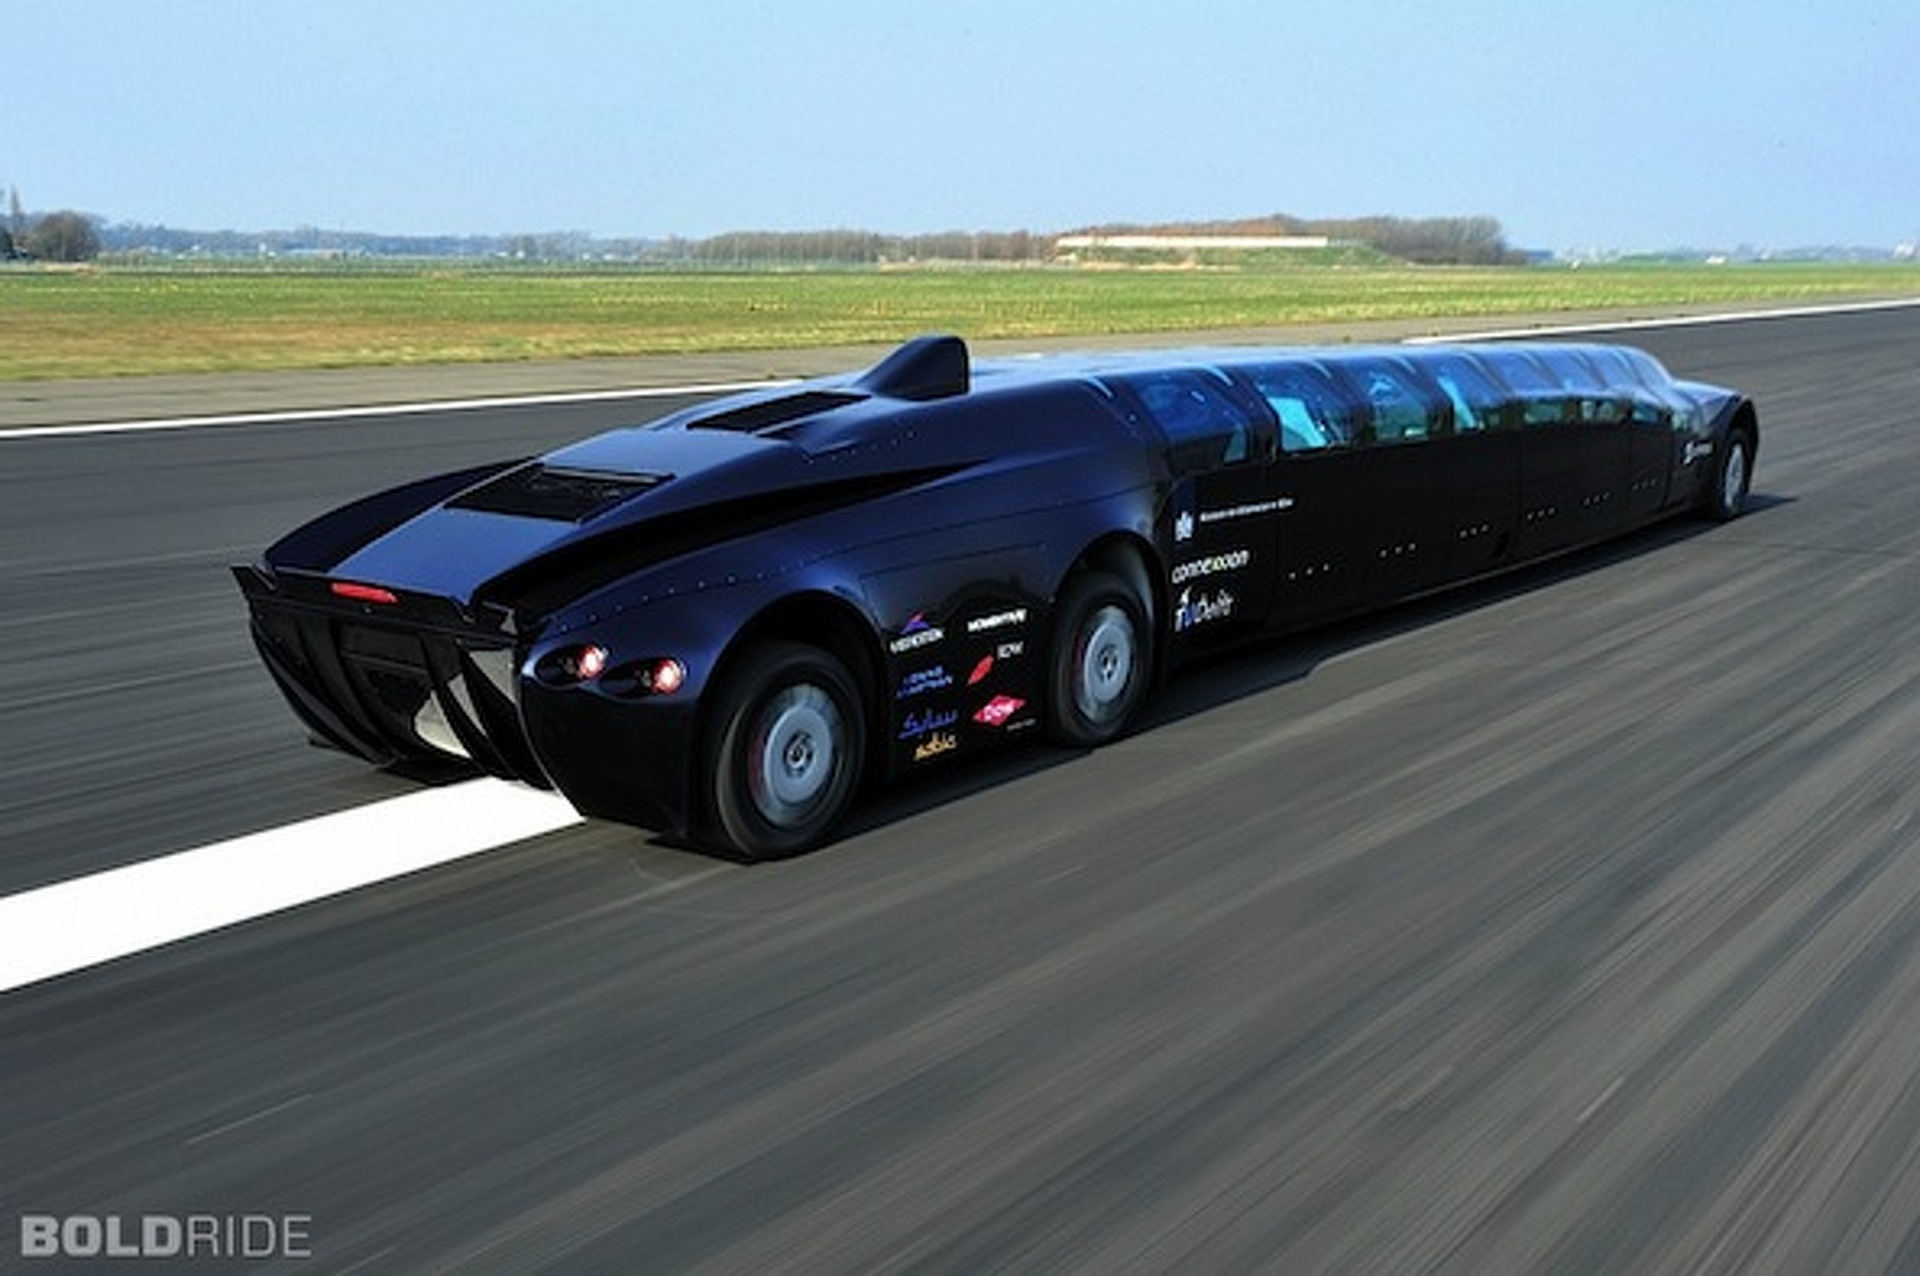 Back to School Blues? Superbus Should Lighten Your Mood [w/video]